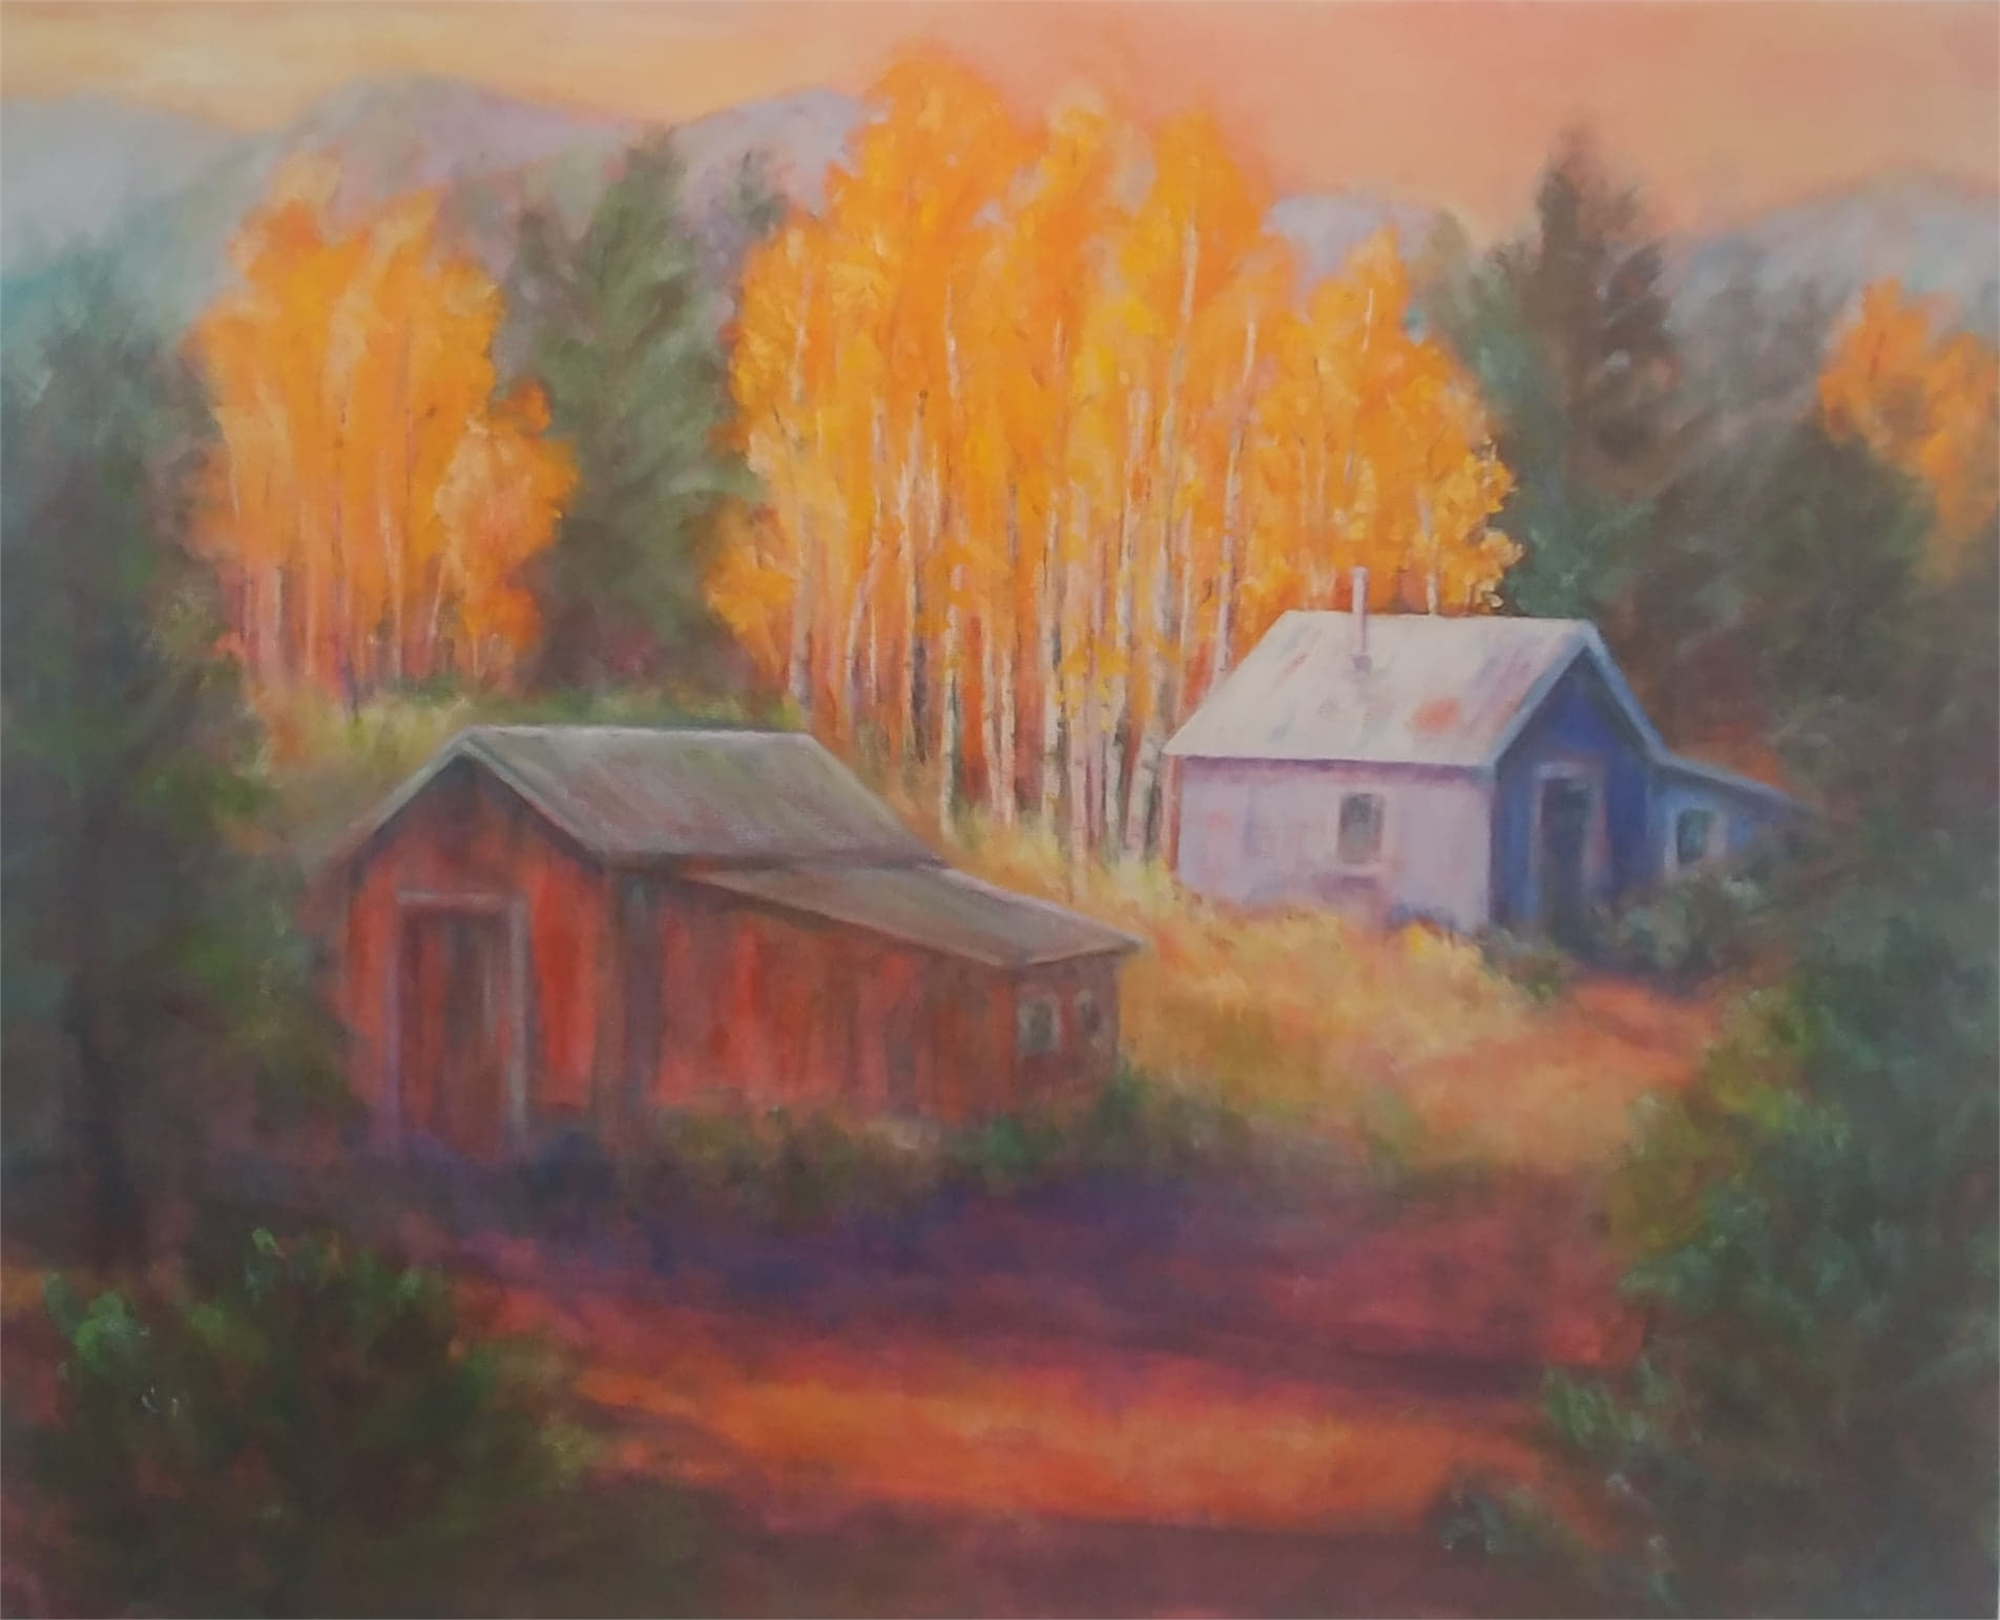 Blue Cottage by Joan Pechanec (McMinnville, OR)